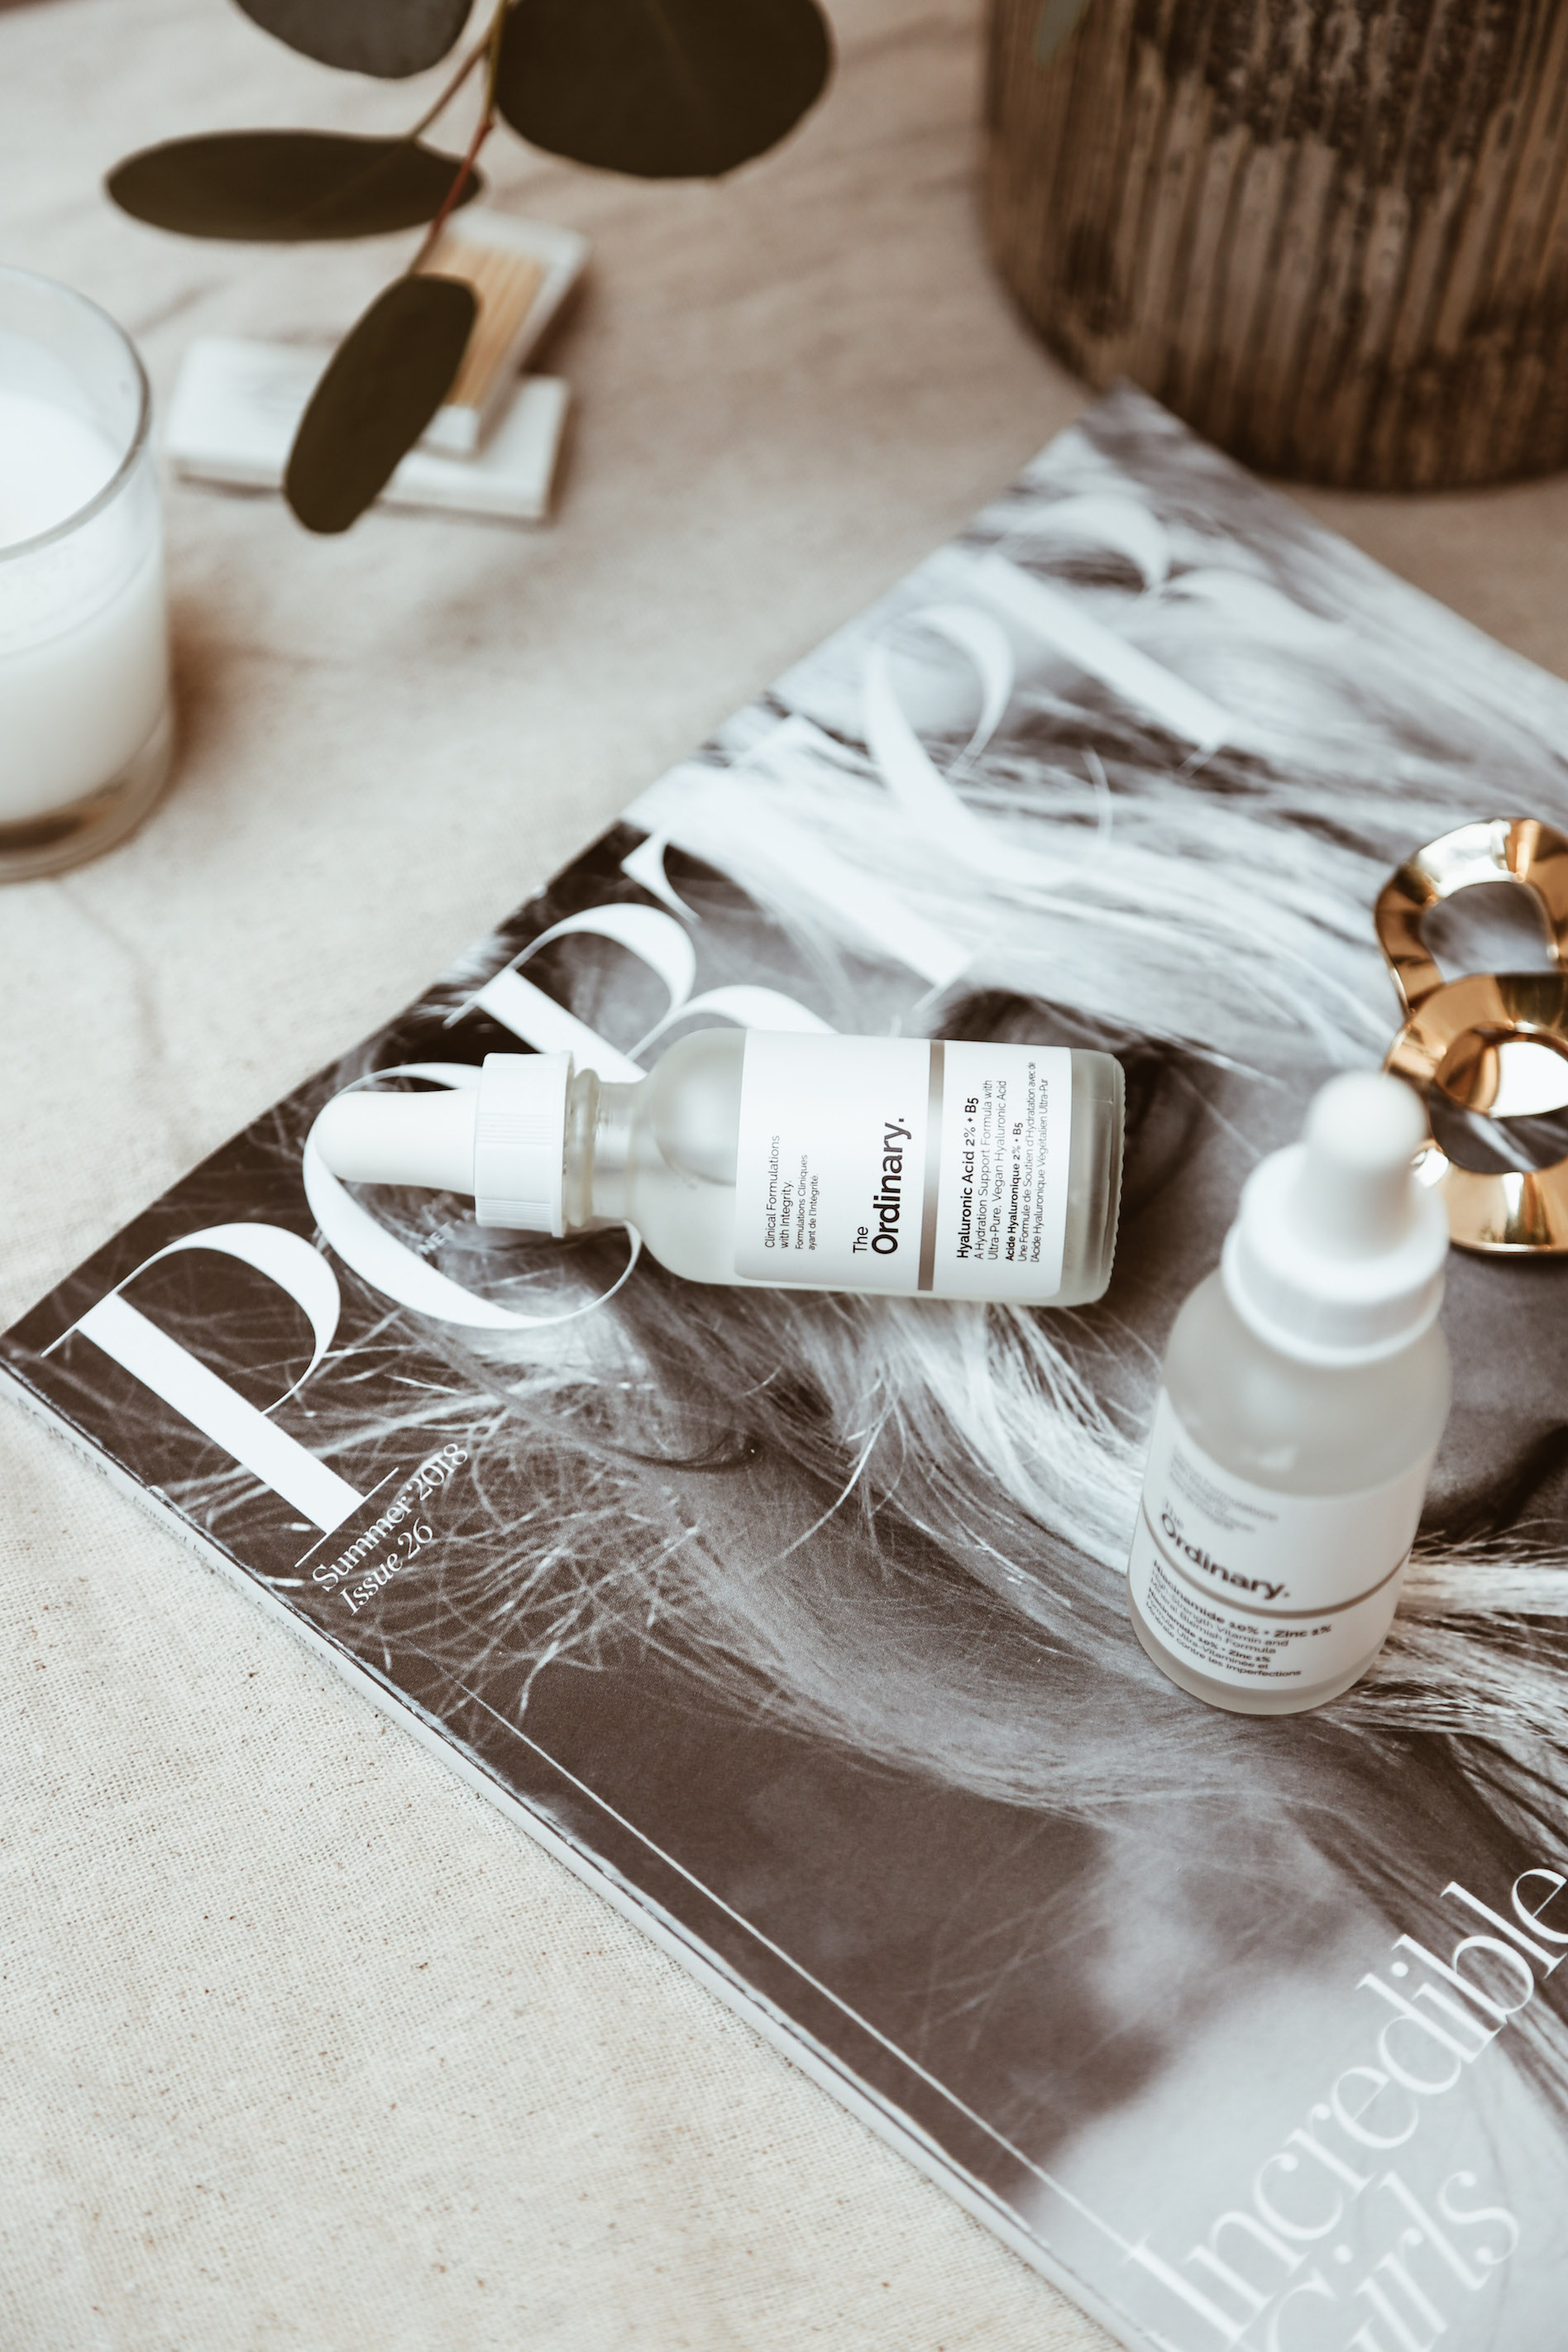 The ordinary beauty products.jpg